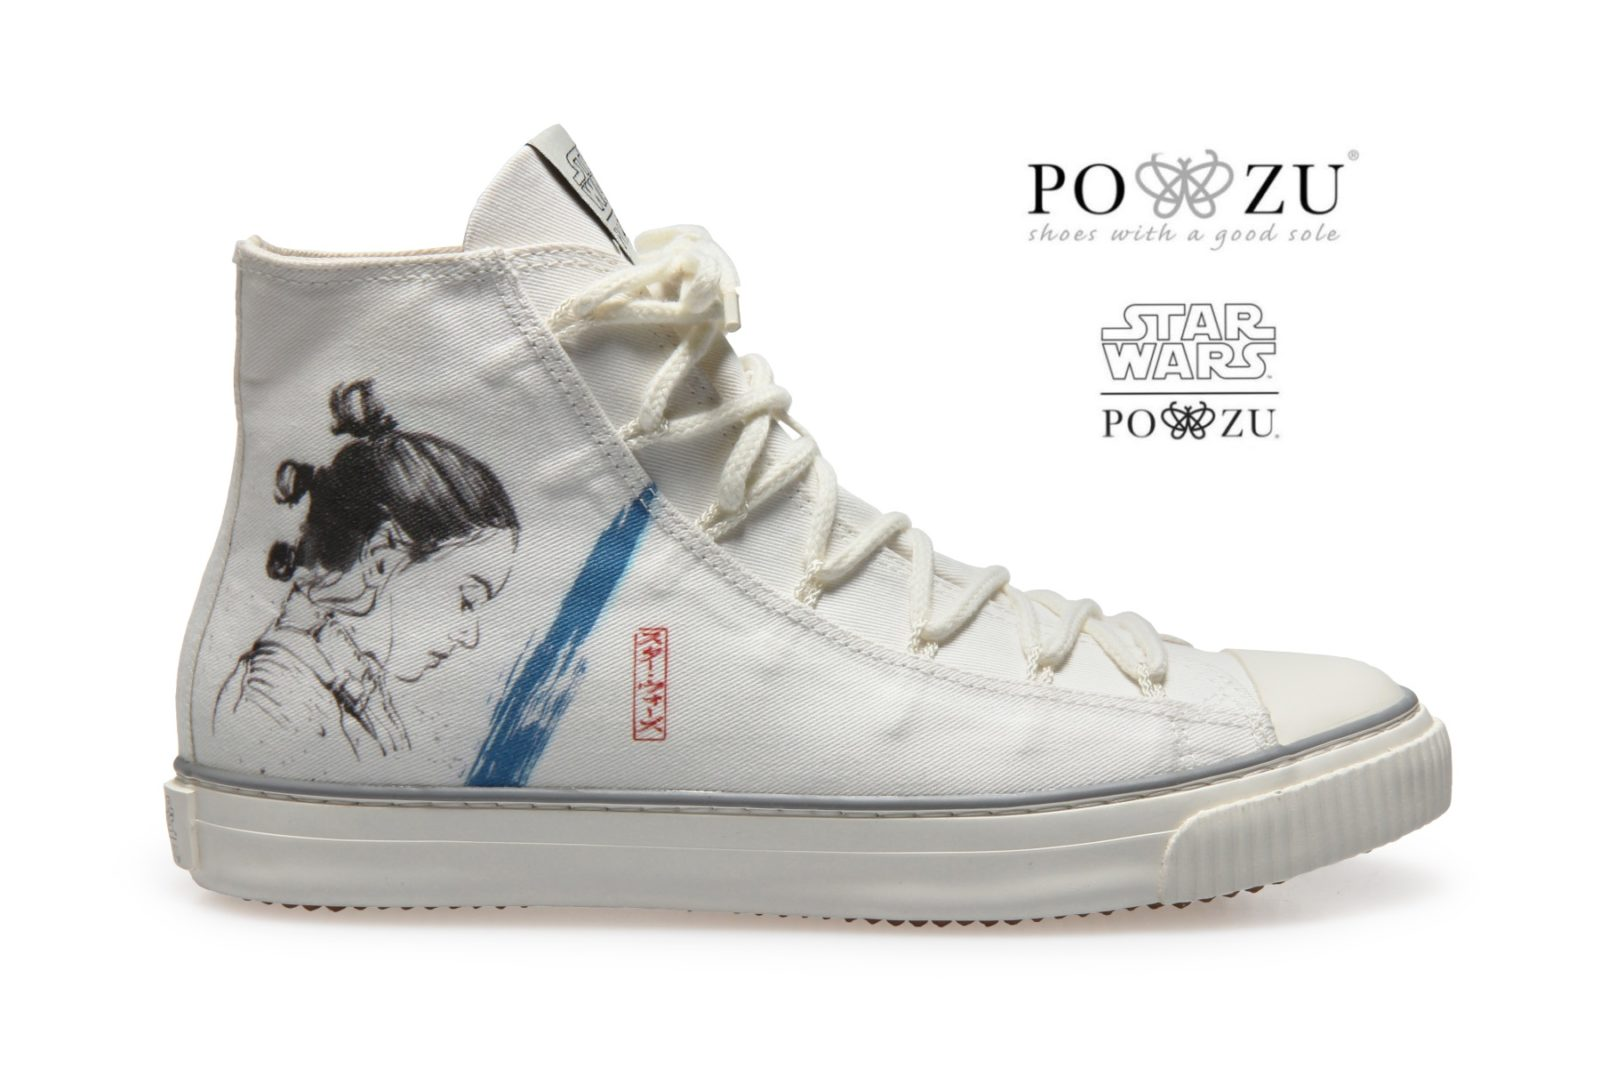 New Po-Zu x Star Wars Rey Sneakers!